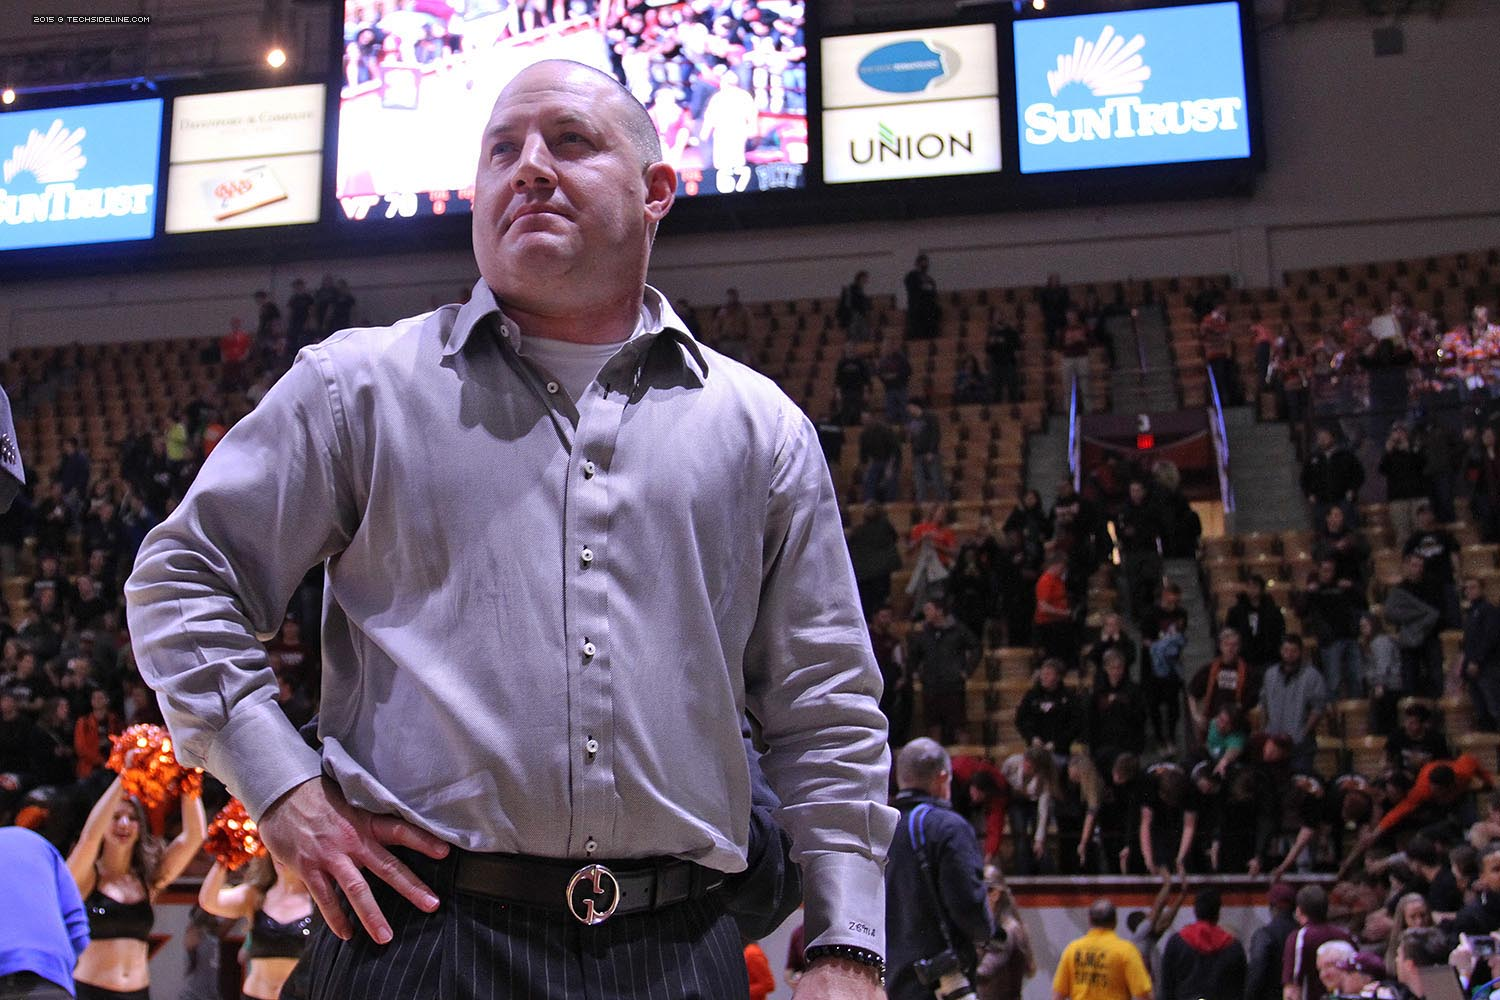 One year into his tenure, Buzz Williams has his gaze squarely set on the future. (photo by Ivan Morozov)